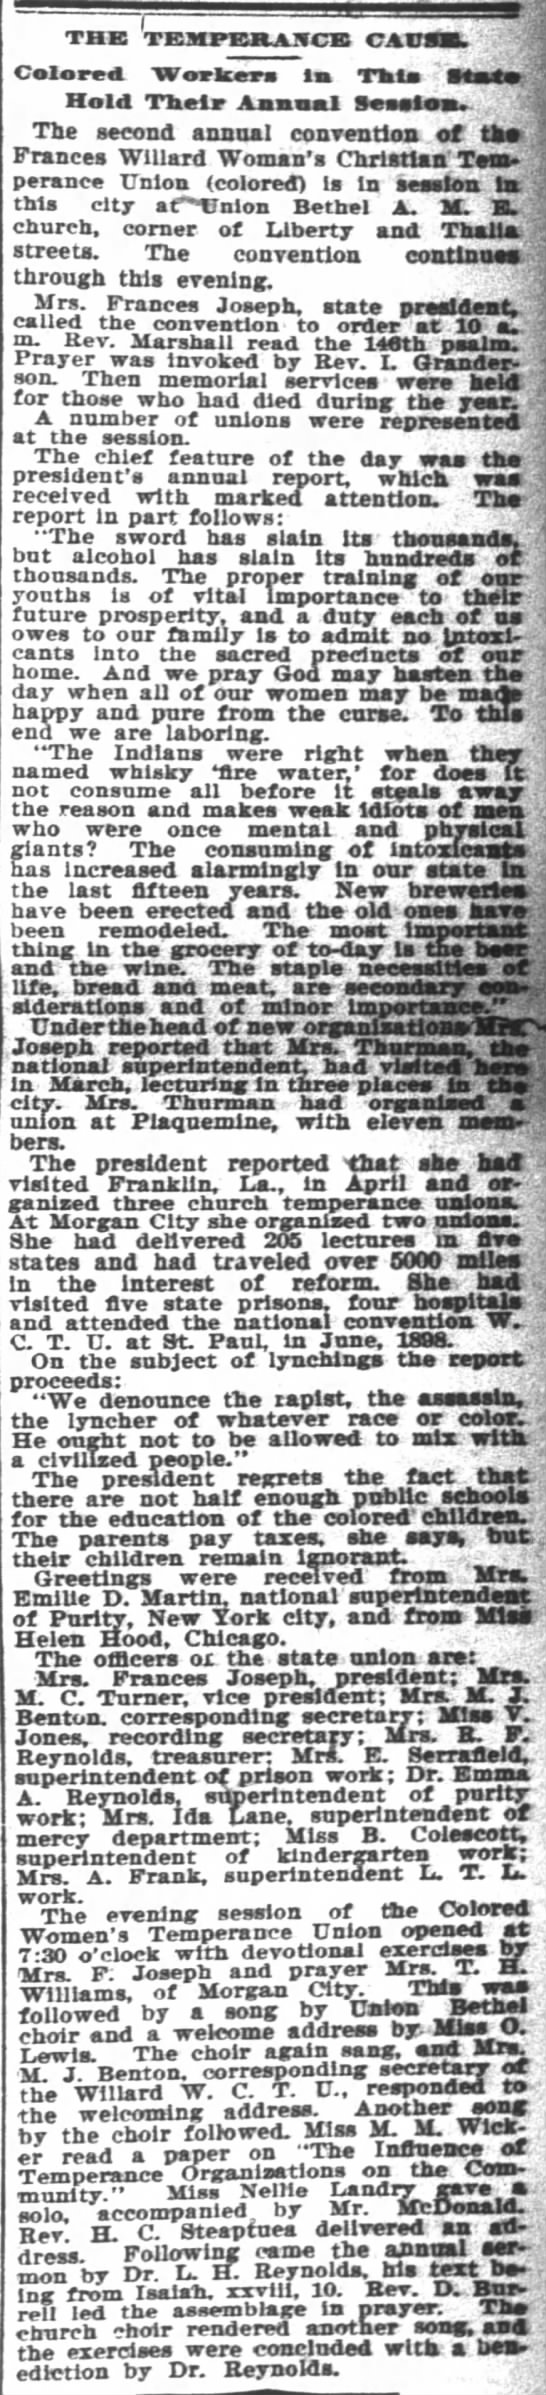 The Temperance Cause. The Times-Picayune (New Orleans, Louisiana) May 12, 1899, p 3 -